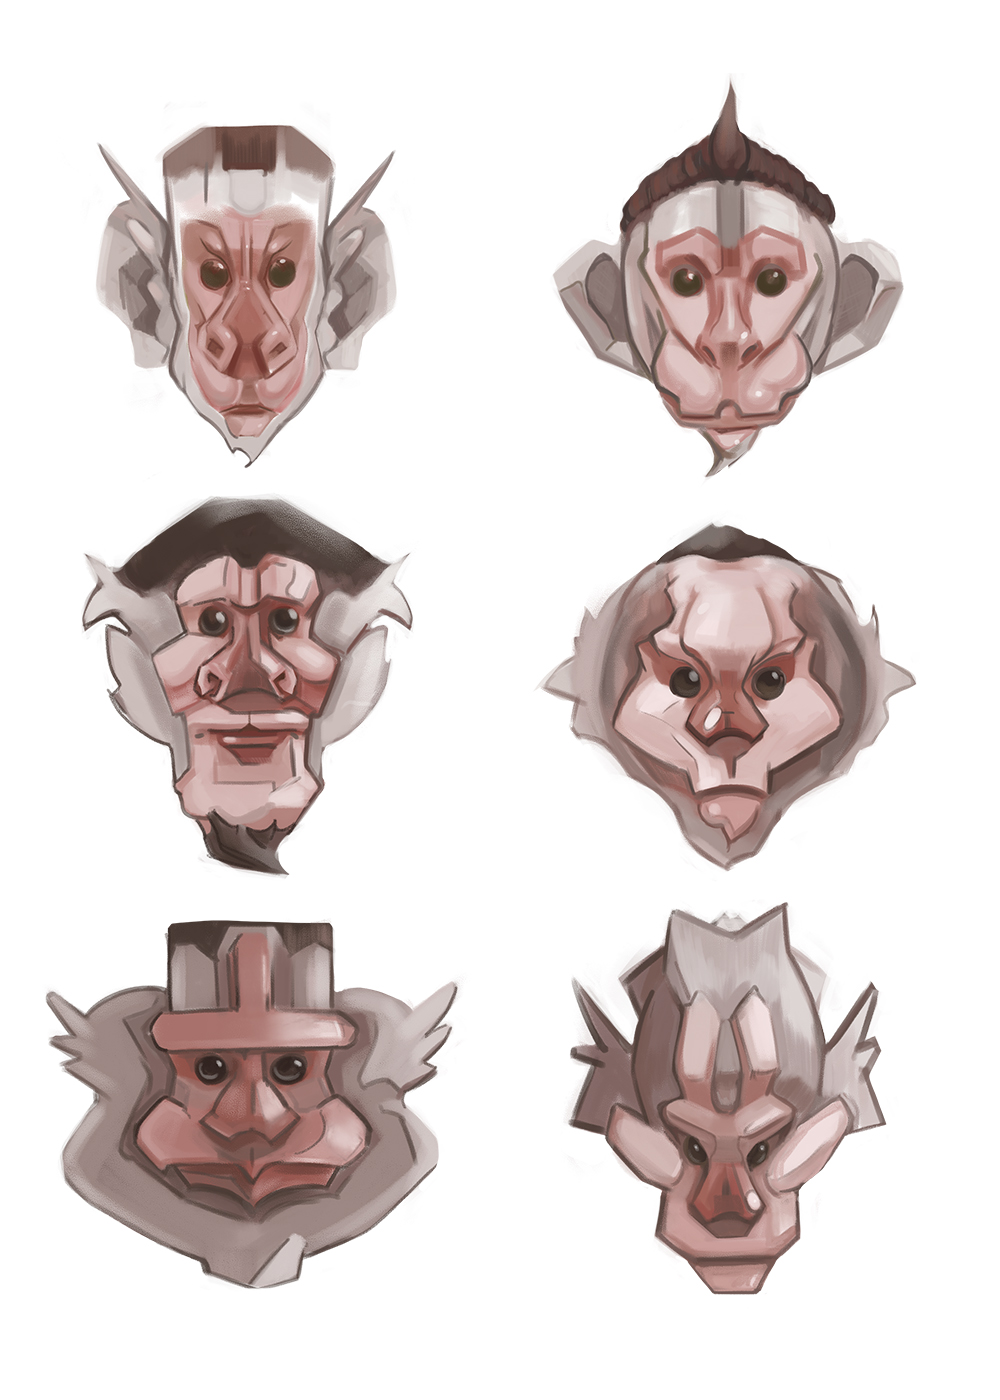 Six ideations of monkey faces.